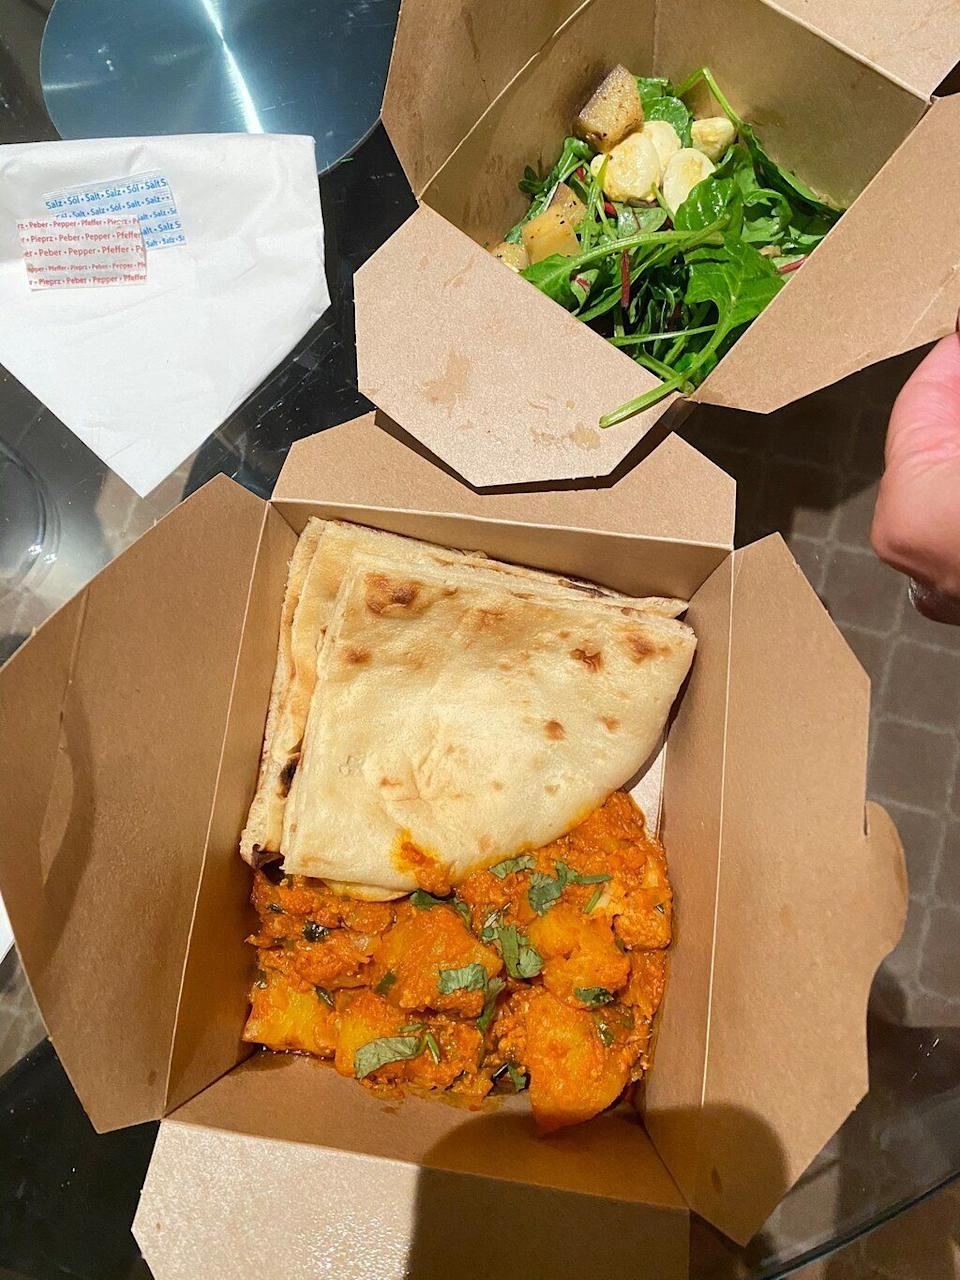 Aloo gobi with buttered naan from the Radisson (Photo: Trip Advisor)